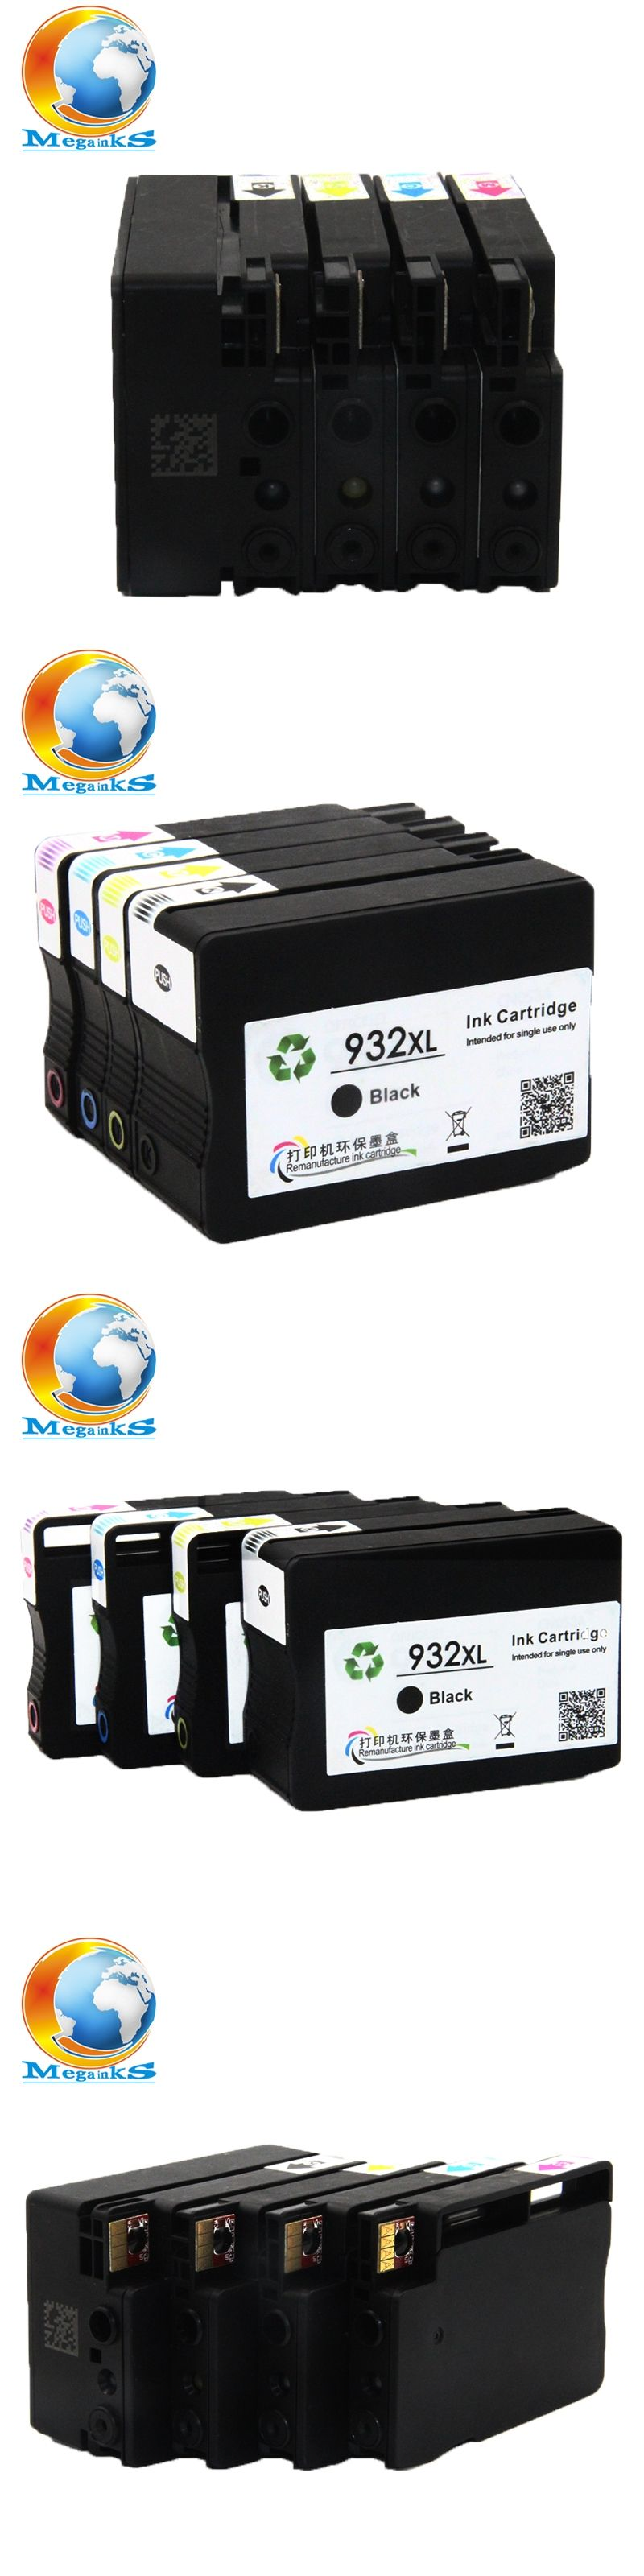 4 Colour No Pigment Ink Cartridge For HP Officejet Pro 6100 6600 6700 7110 7612 7610 7510 7512 Printer